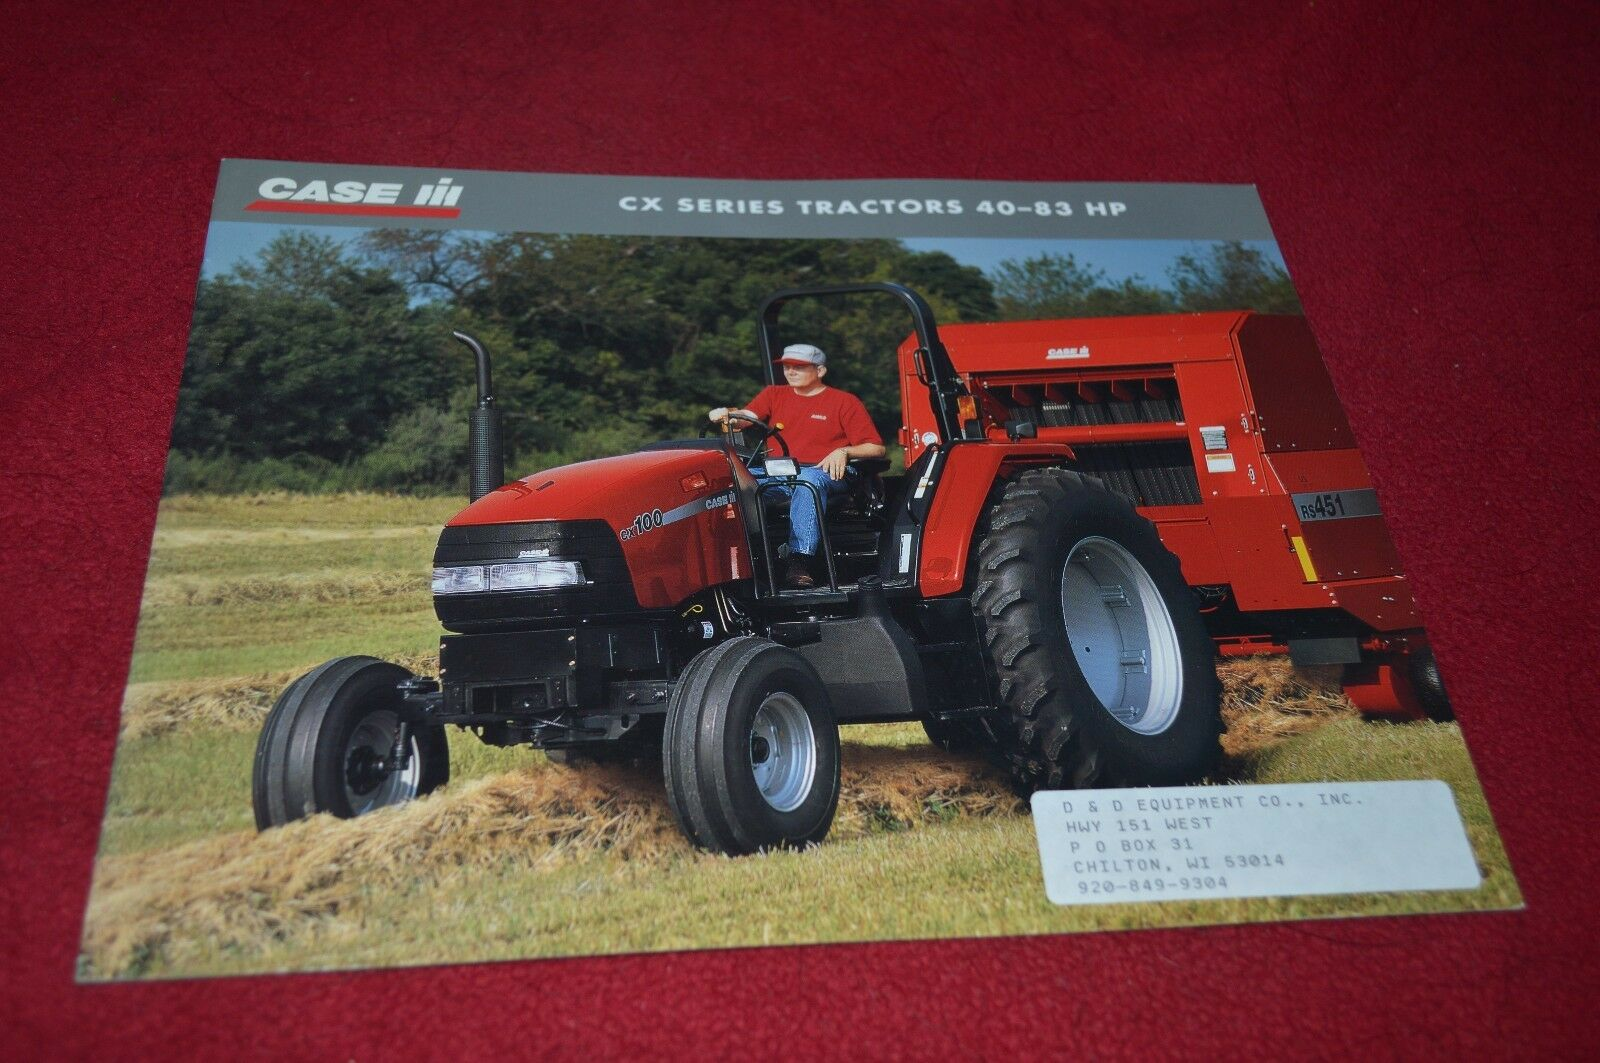 Case International CX50 CX60 CX70 CX80 CX100 Tractor Dealer's Brochure  YABE10 1 of 1Only 1 available ...